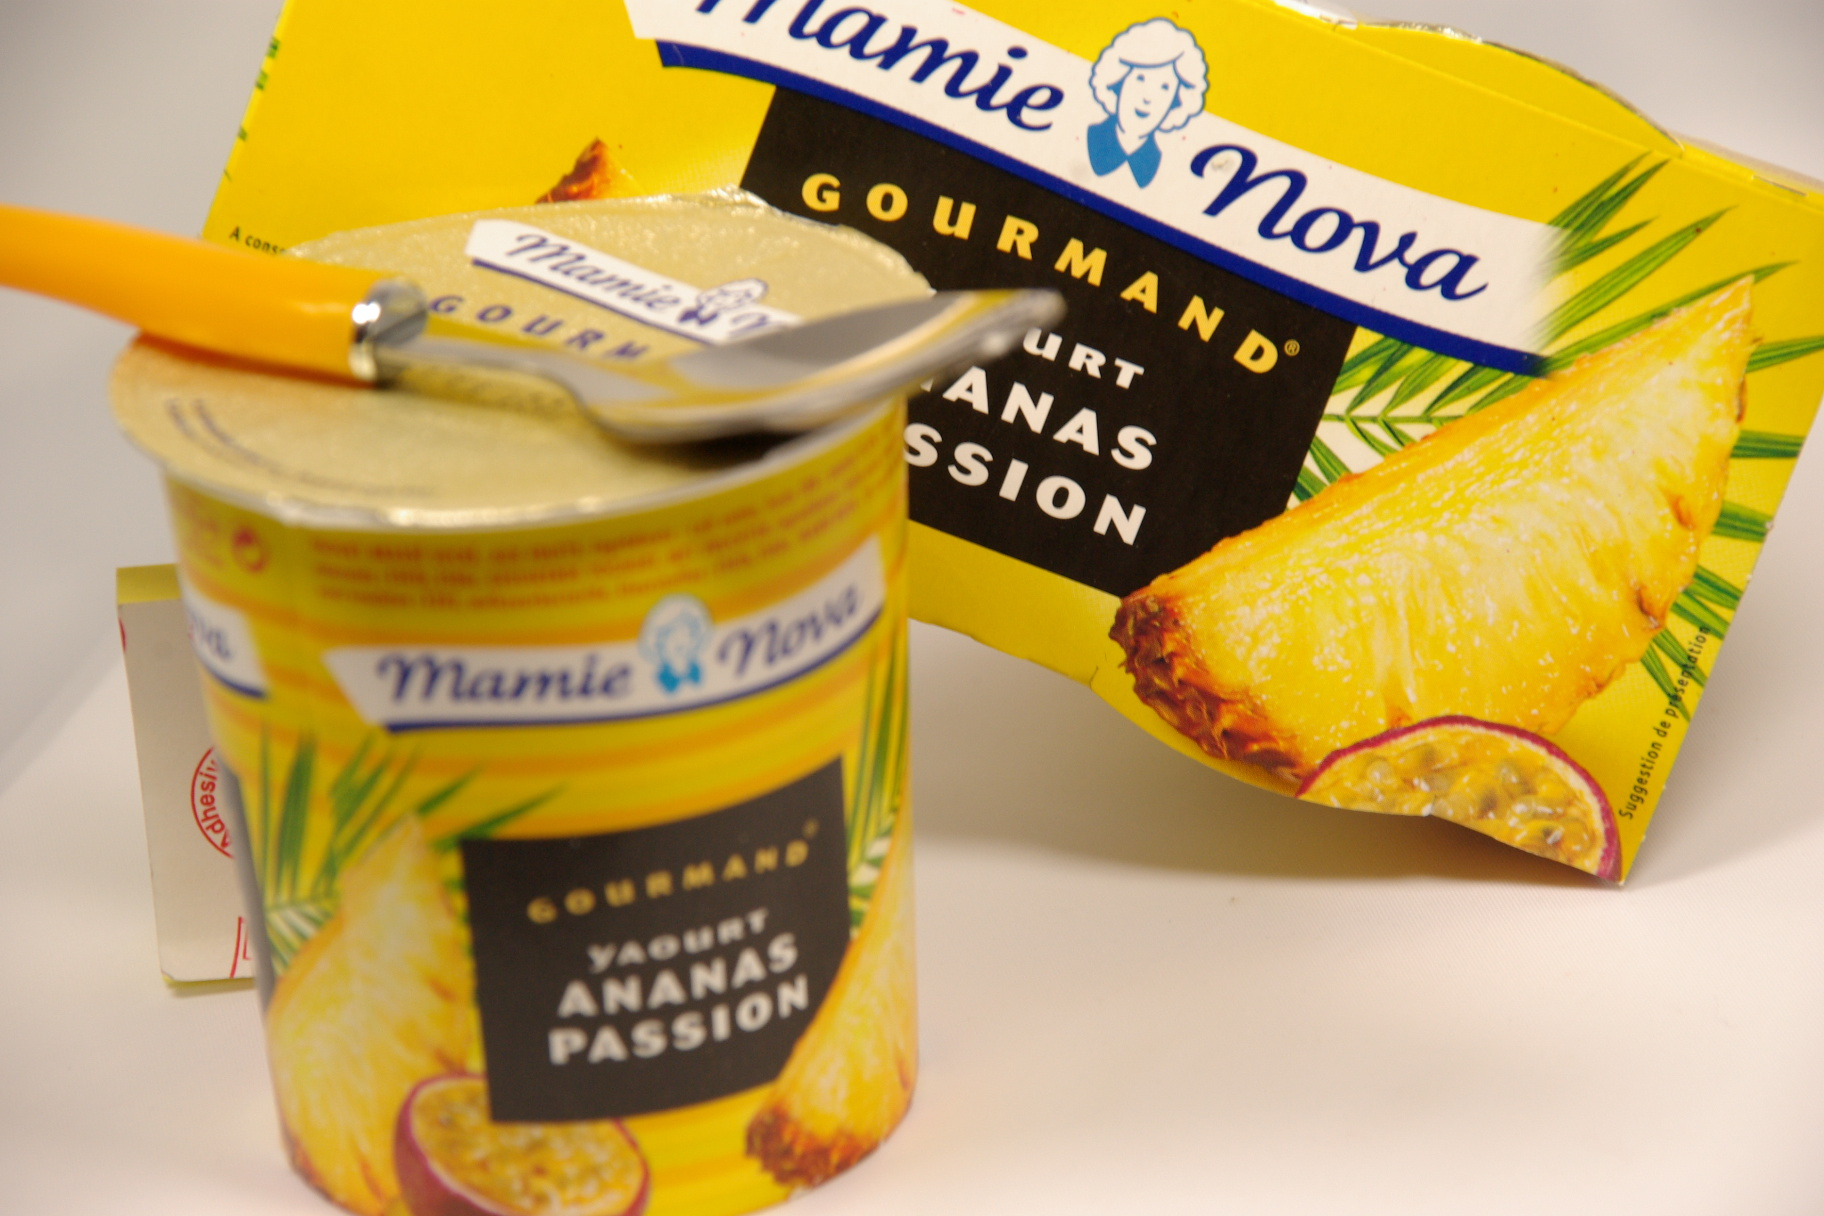 GOURMAND ANANAS PASSION